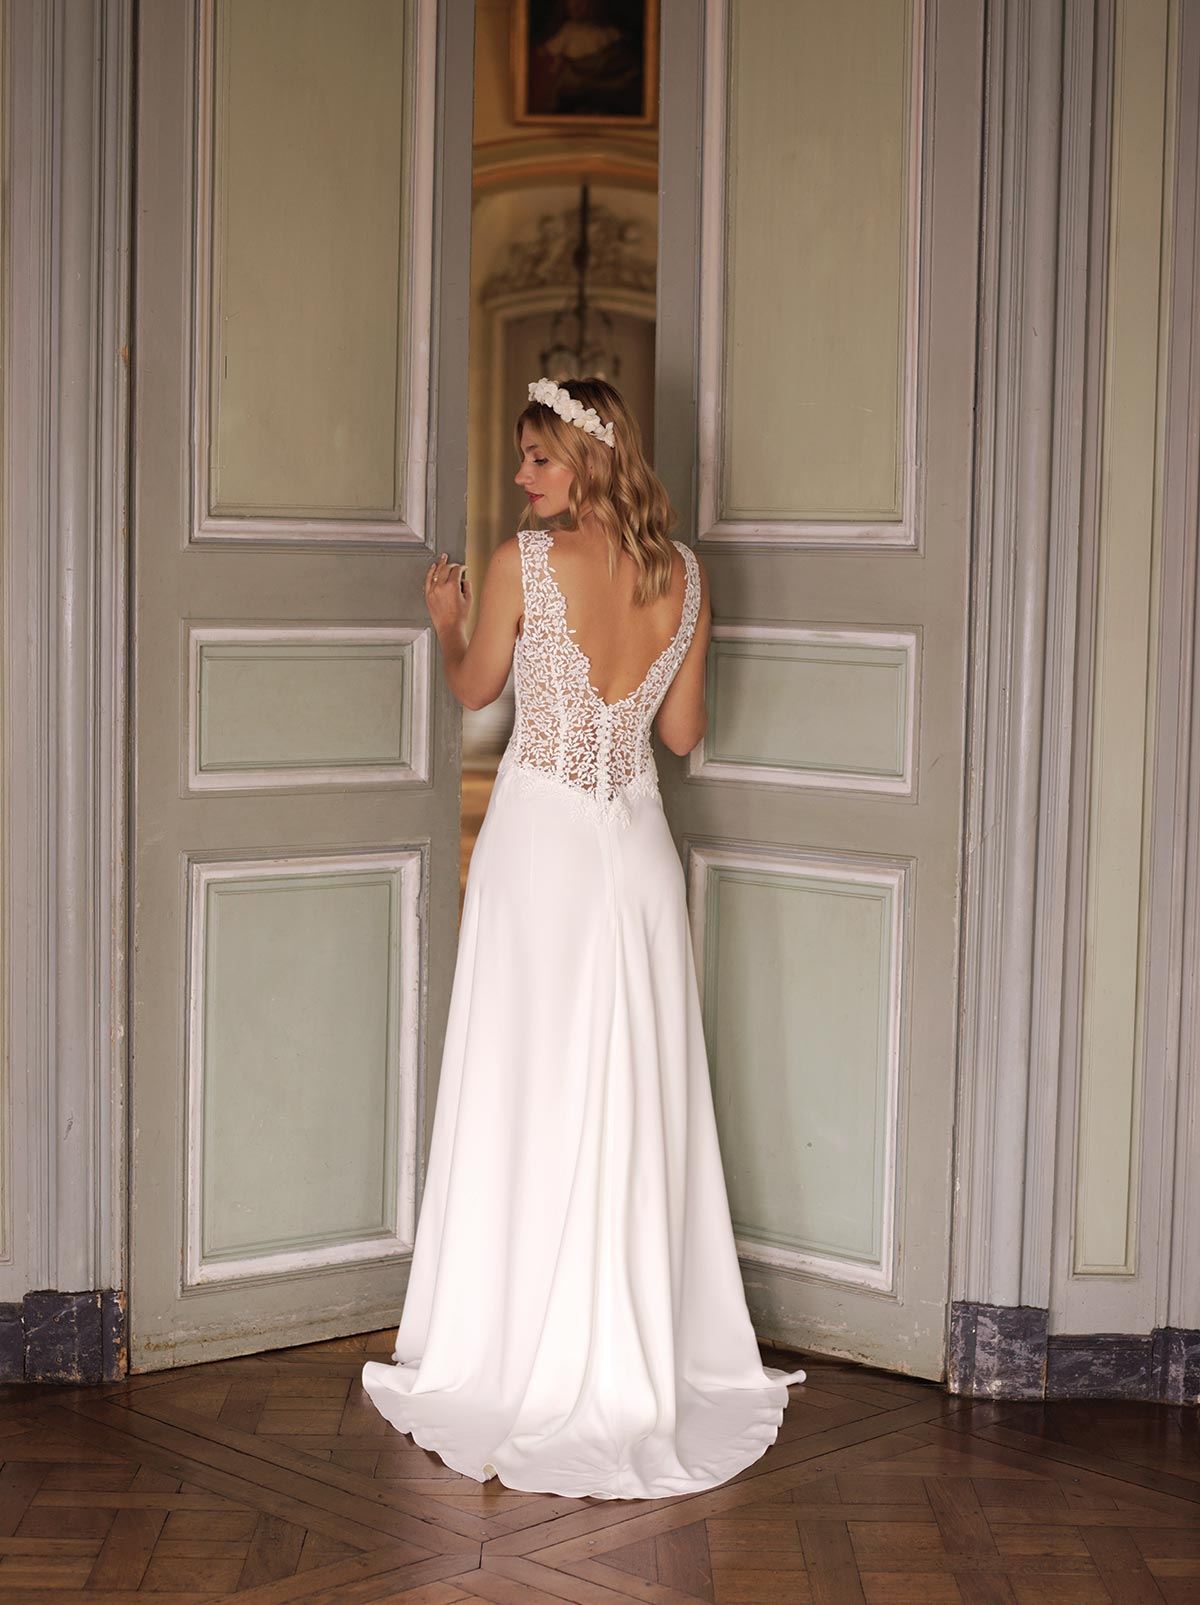 emma-dos-ambiance-marie-laporte-collection-2020